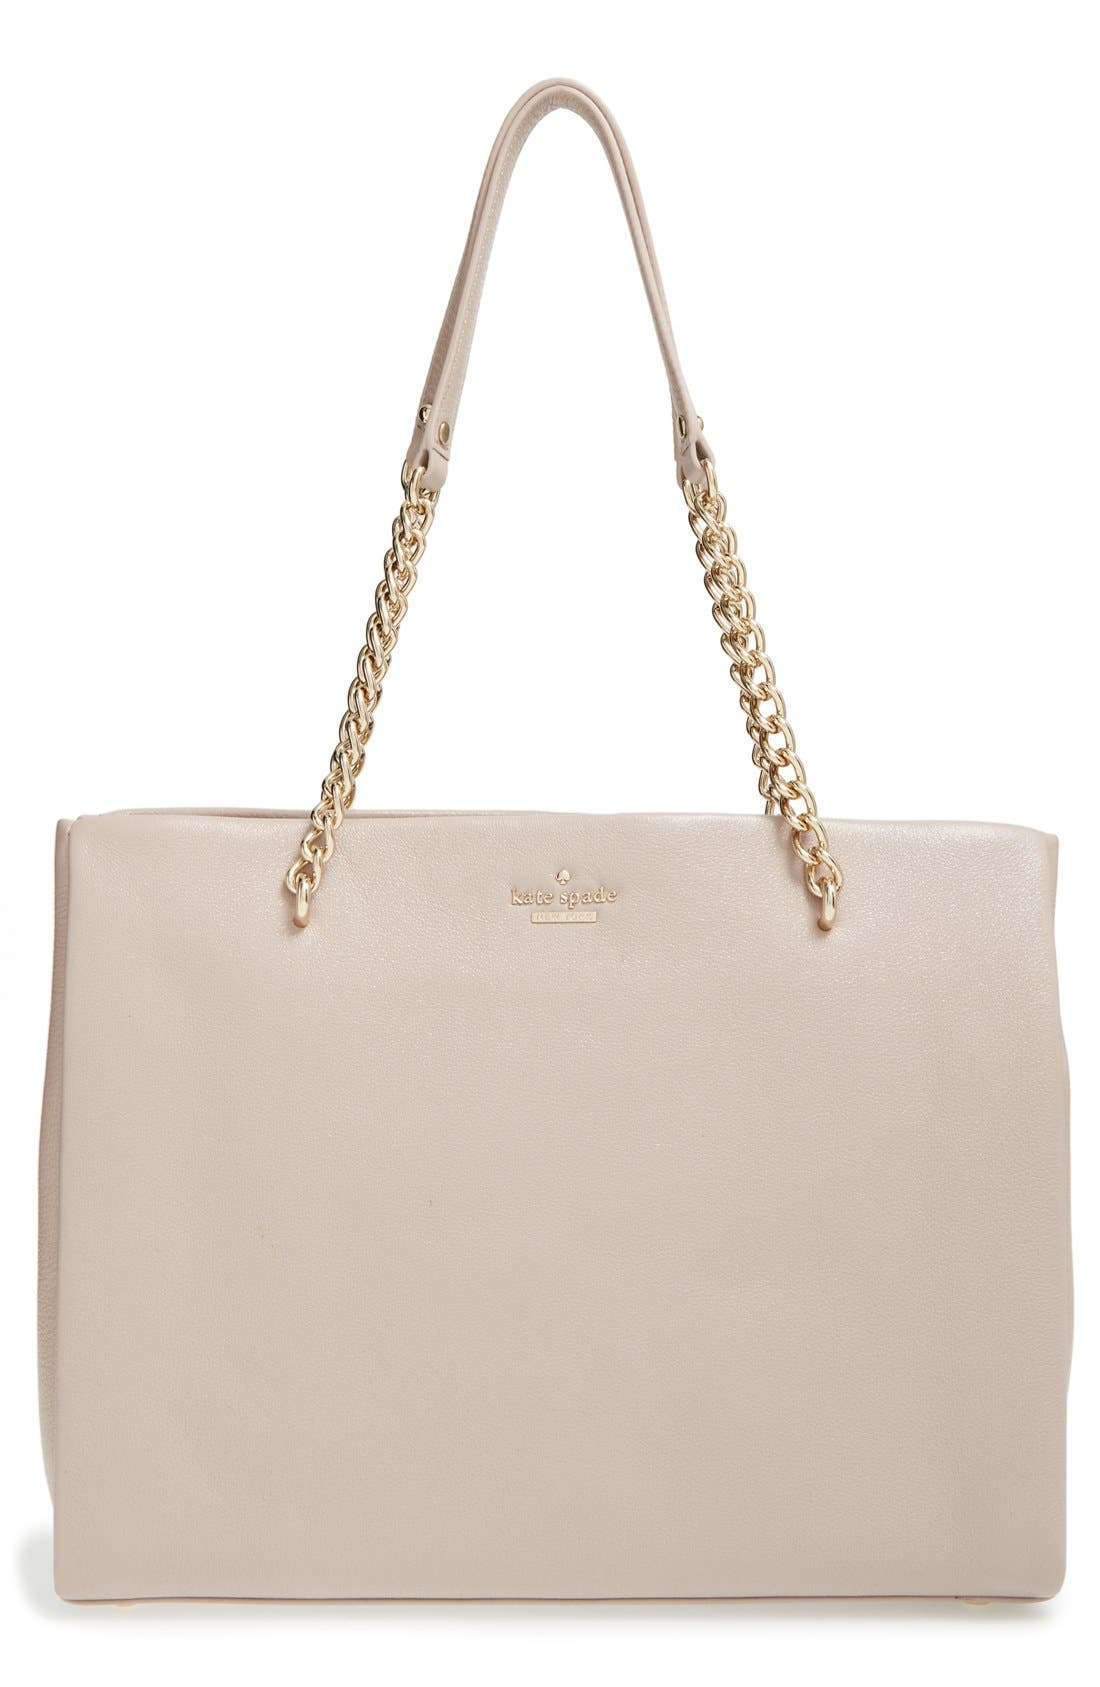 Alternate Image 1 Selected - kate spade new york 'emerson place - smooth phoebe' leather shoulder bag